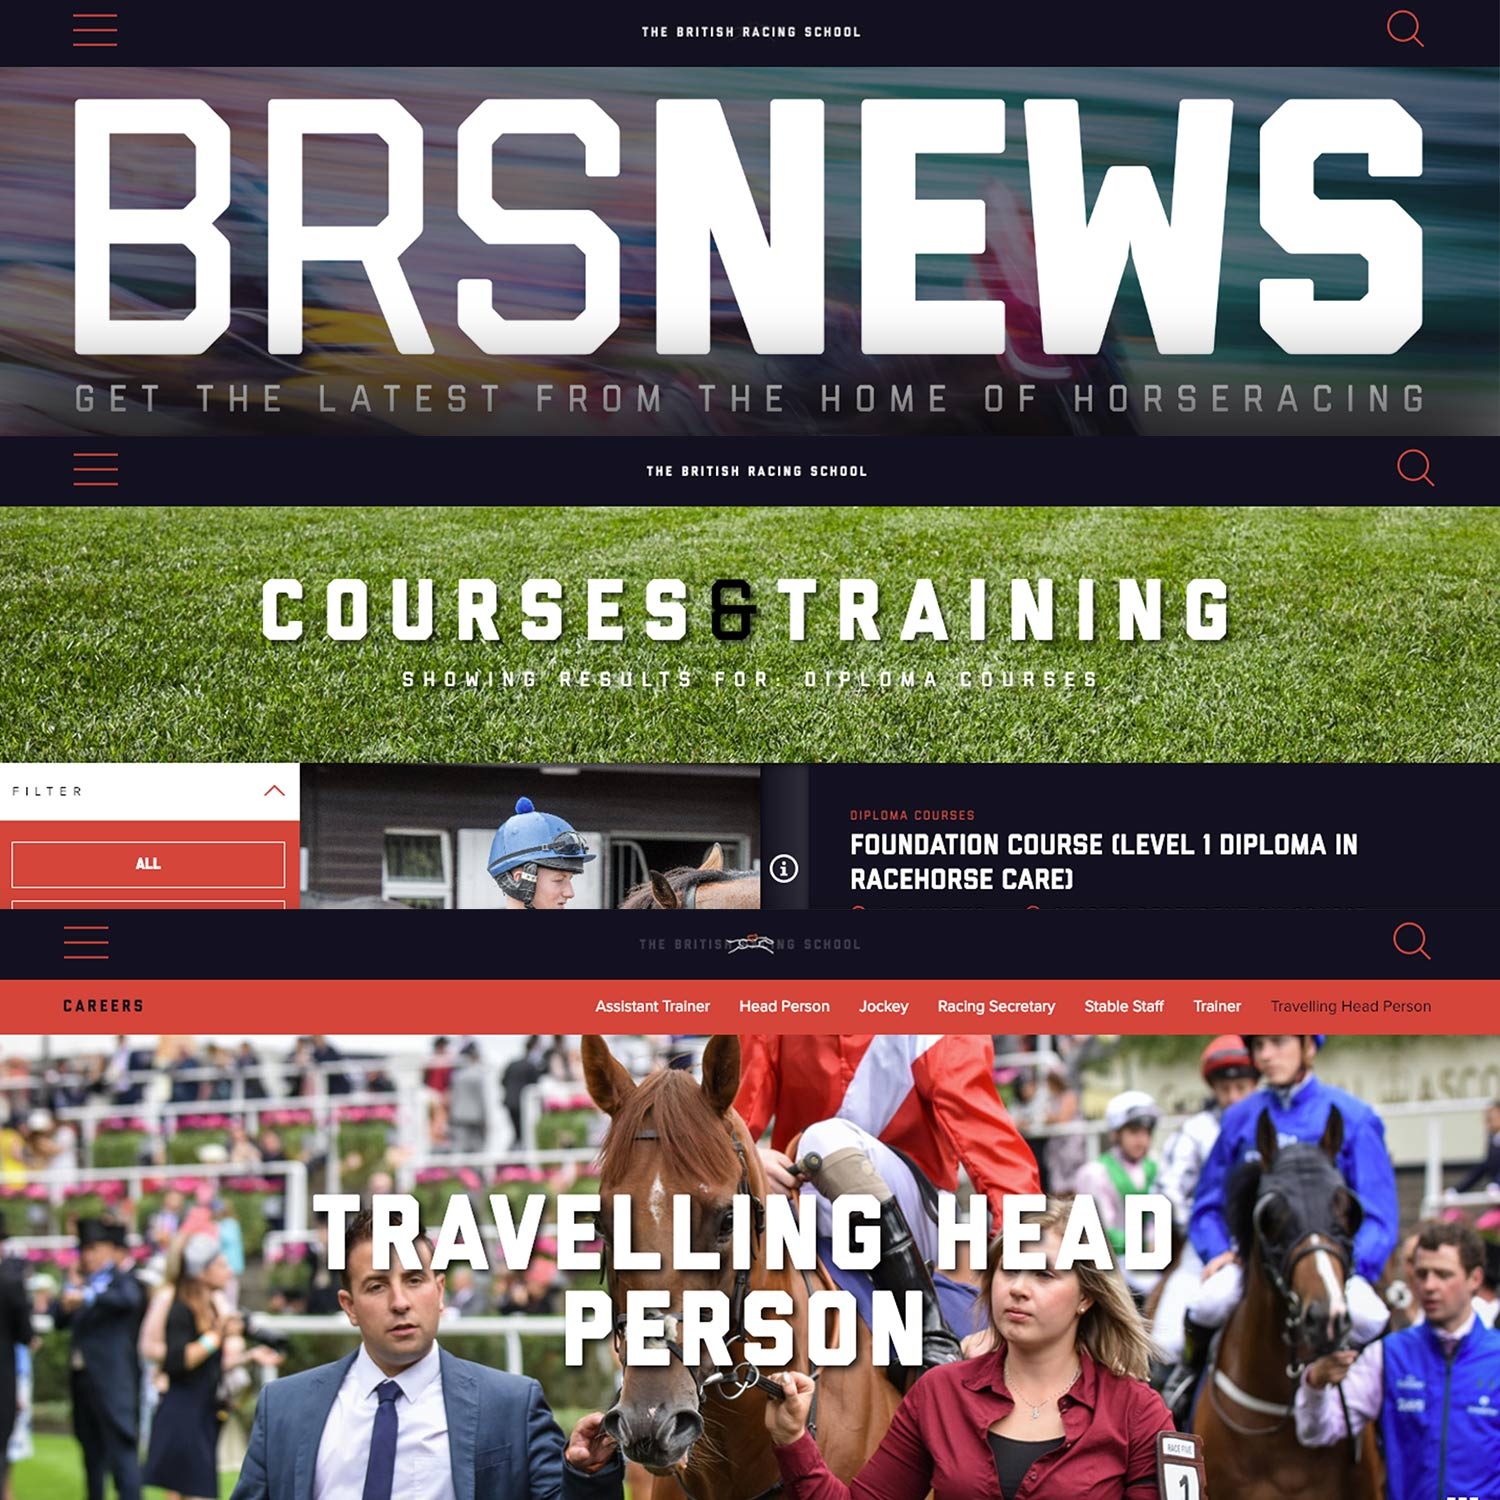 British Racing School careers page